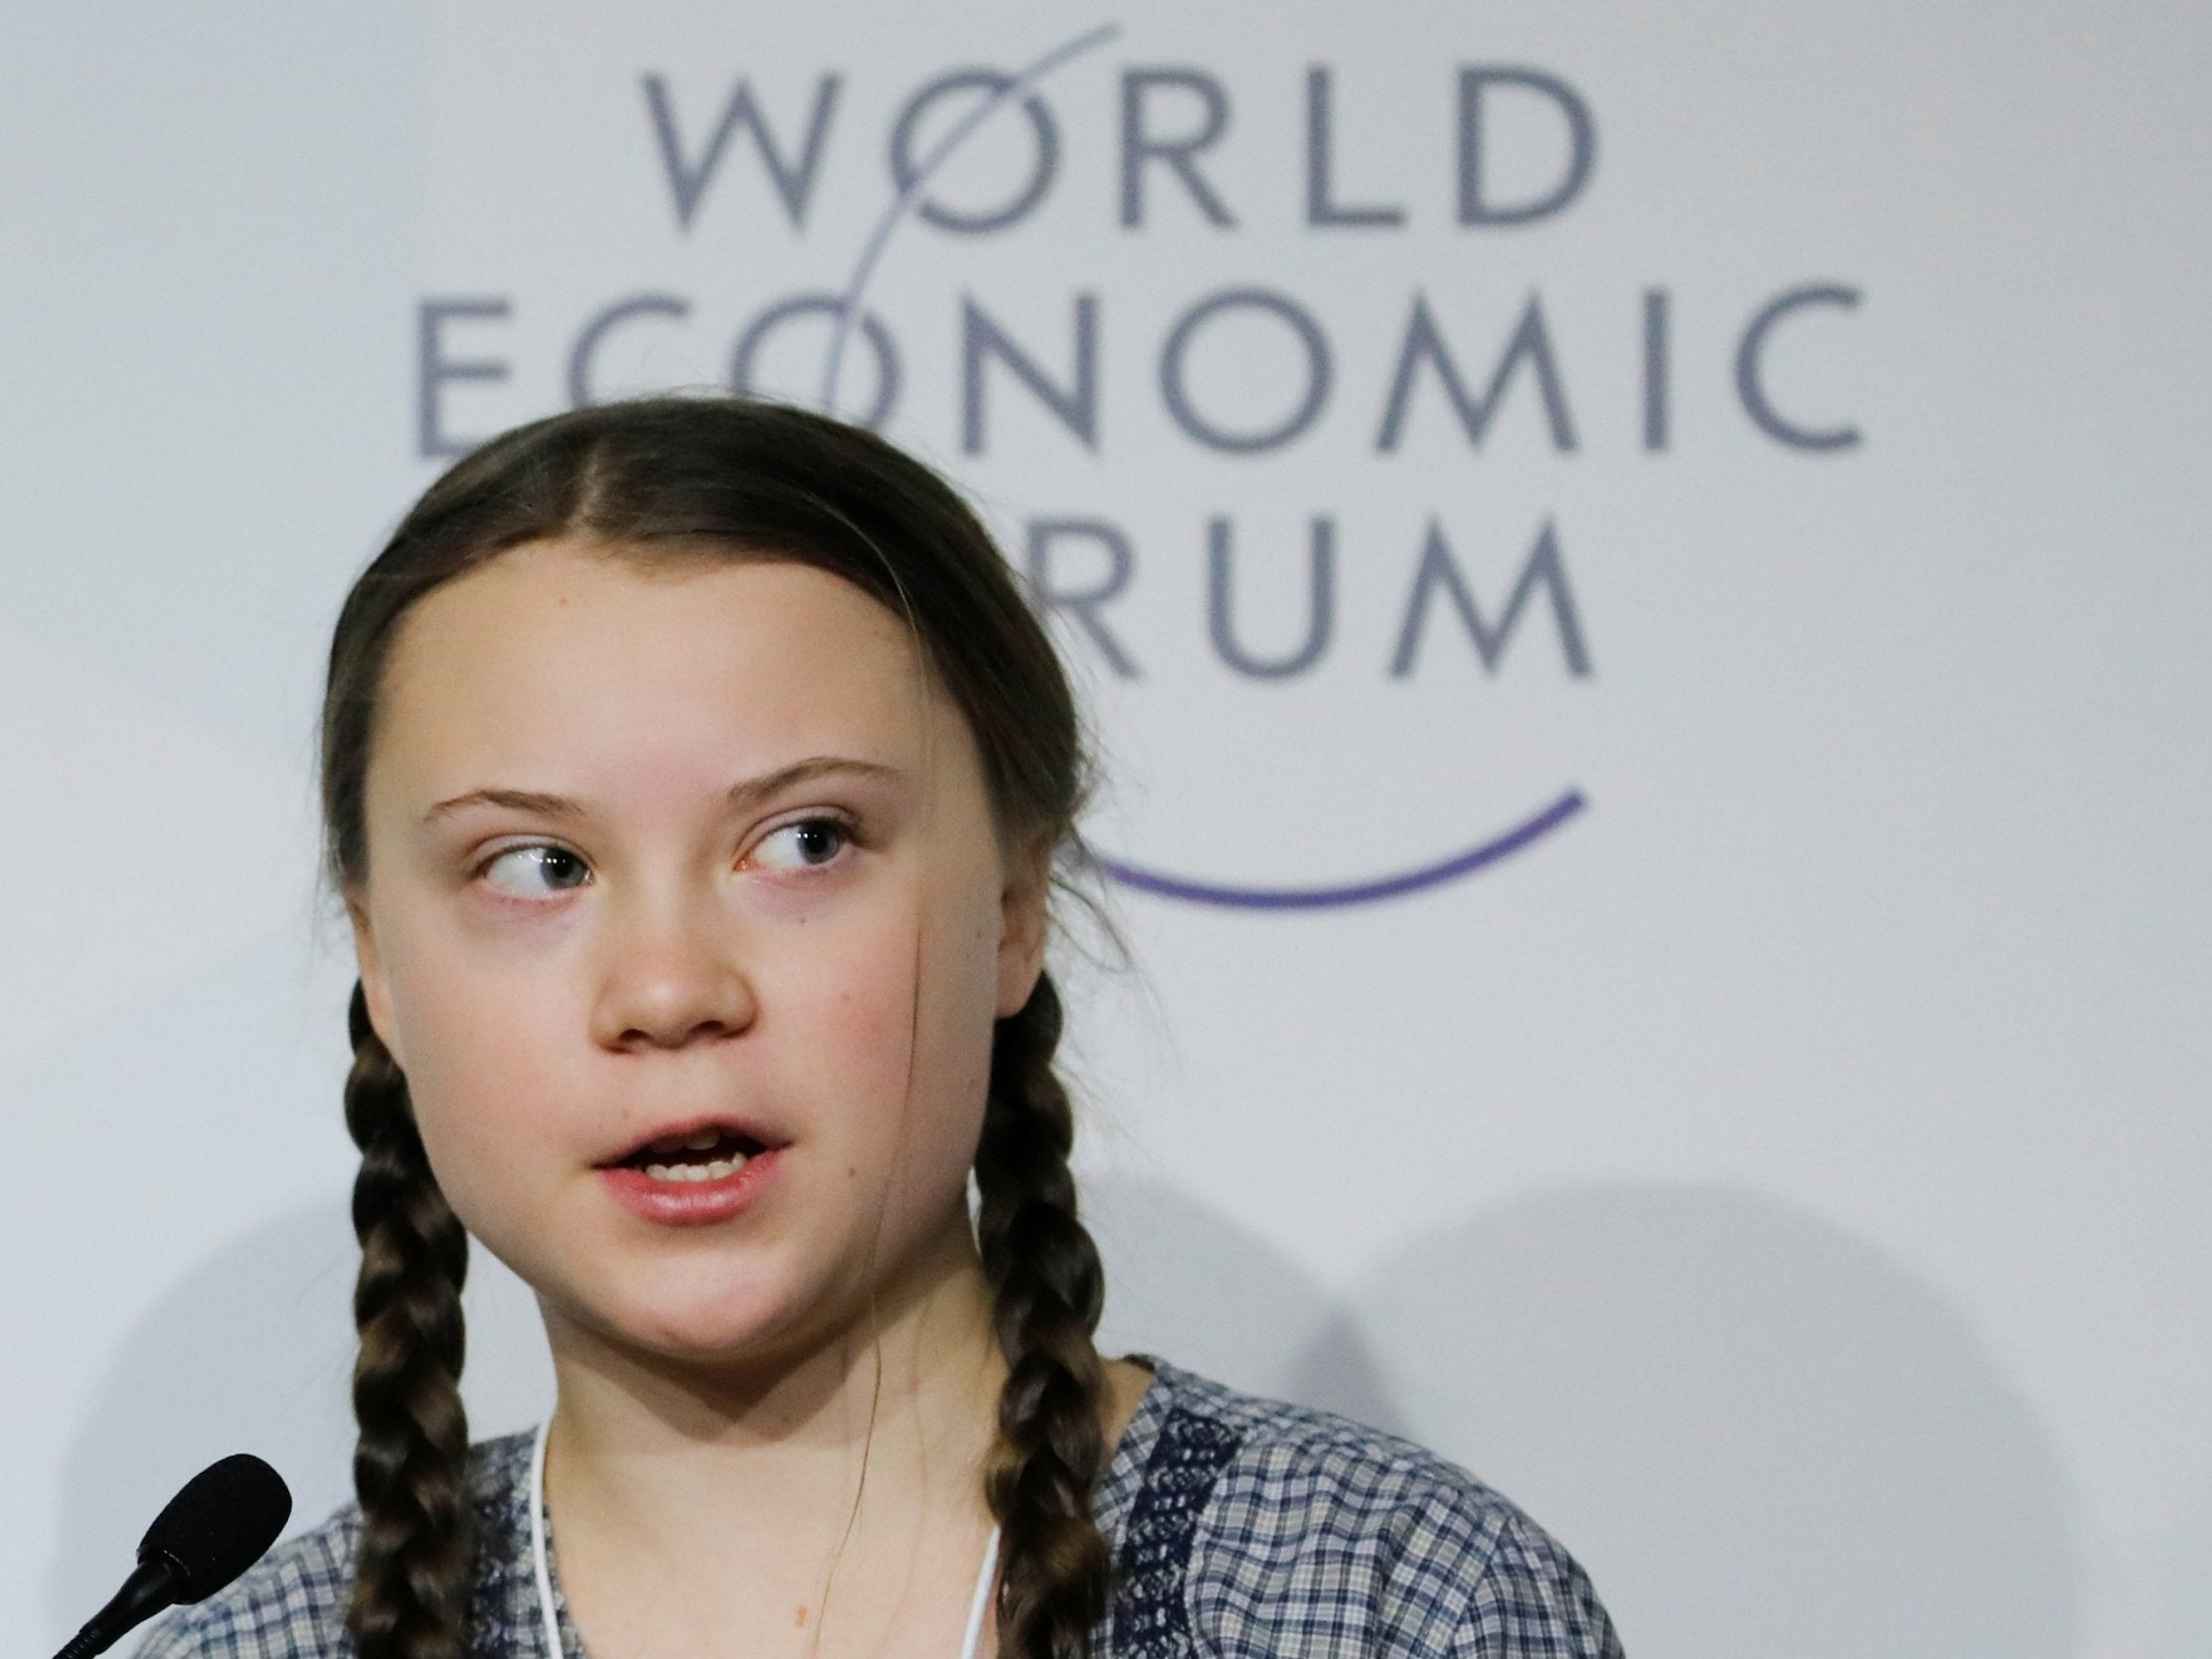 Greta Thunberg's speech at Davos shows that if anyone is going to